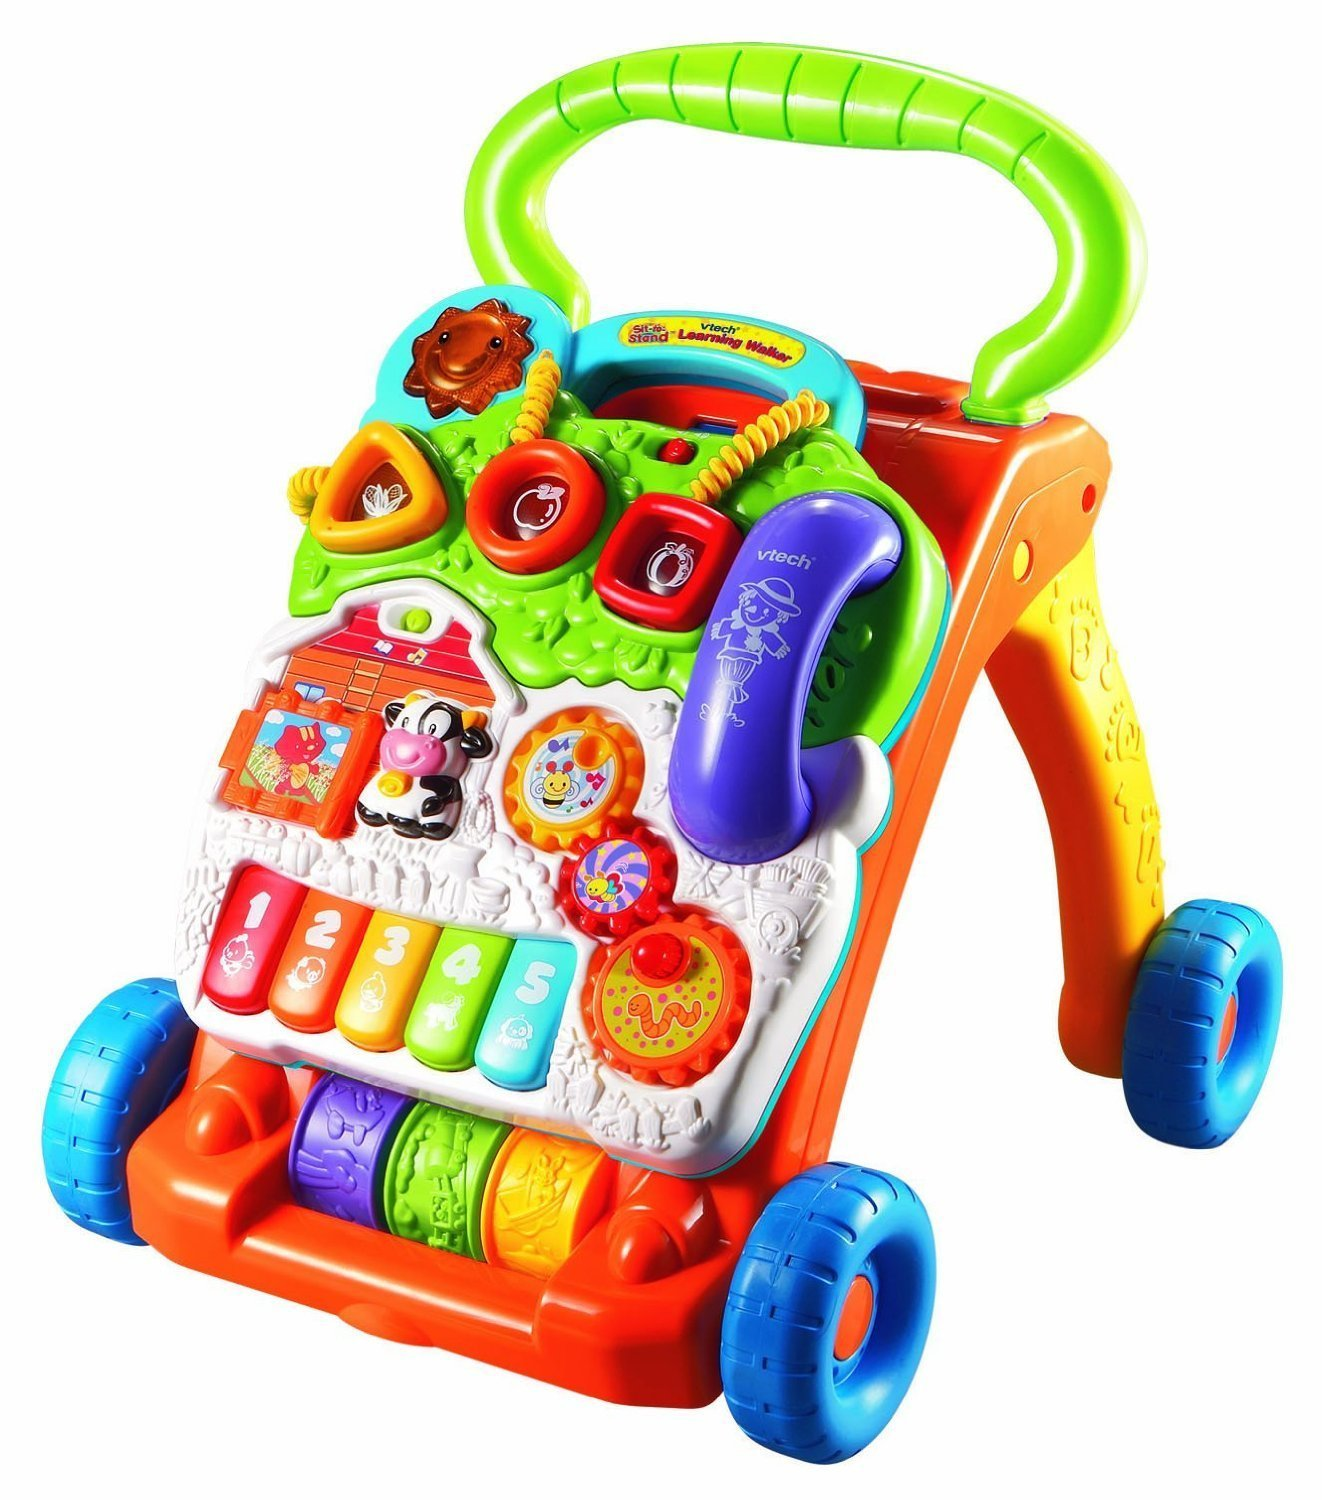 VTech Sit-to-Stand Learning Walker vtech компьютер обучающий